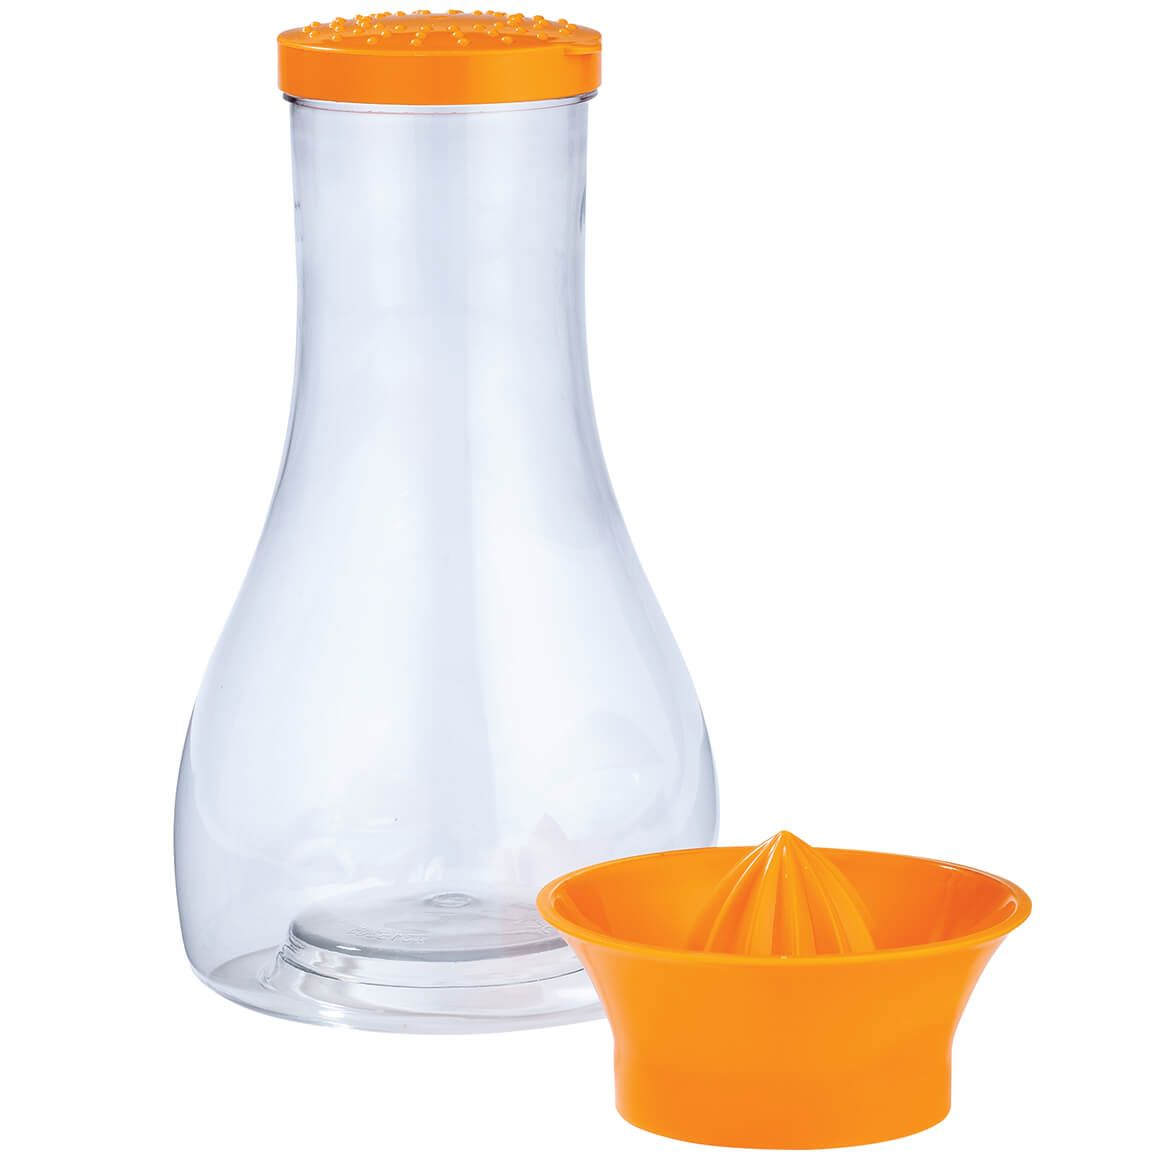 Combination Juicer and Pitcher by Chef's Pride-370577